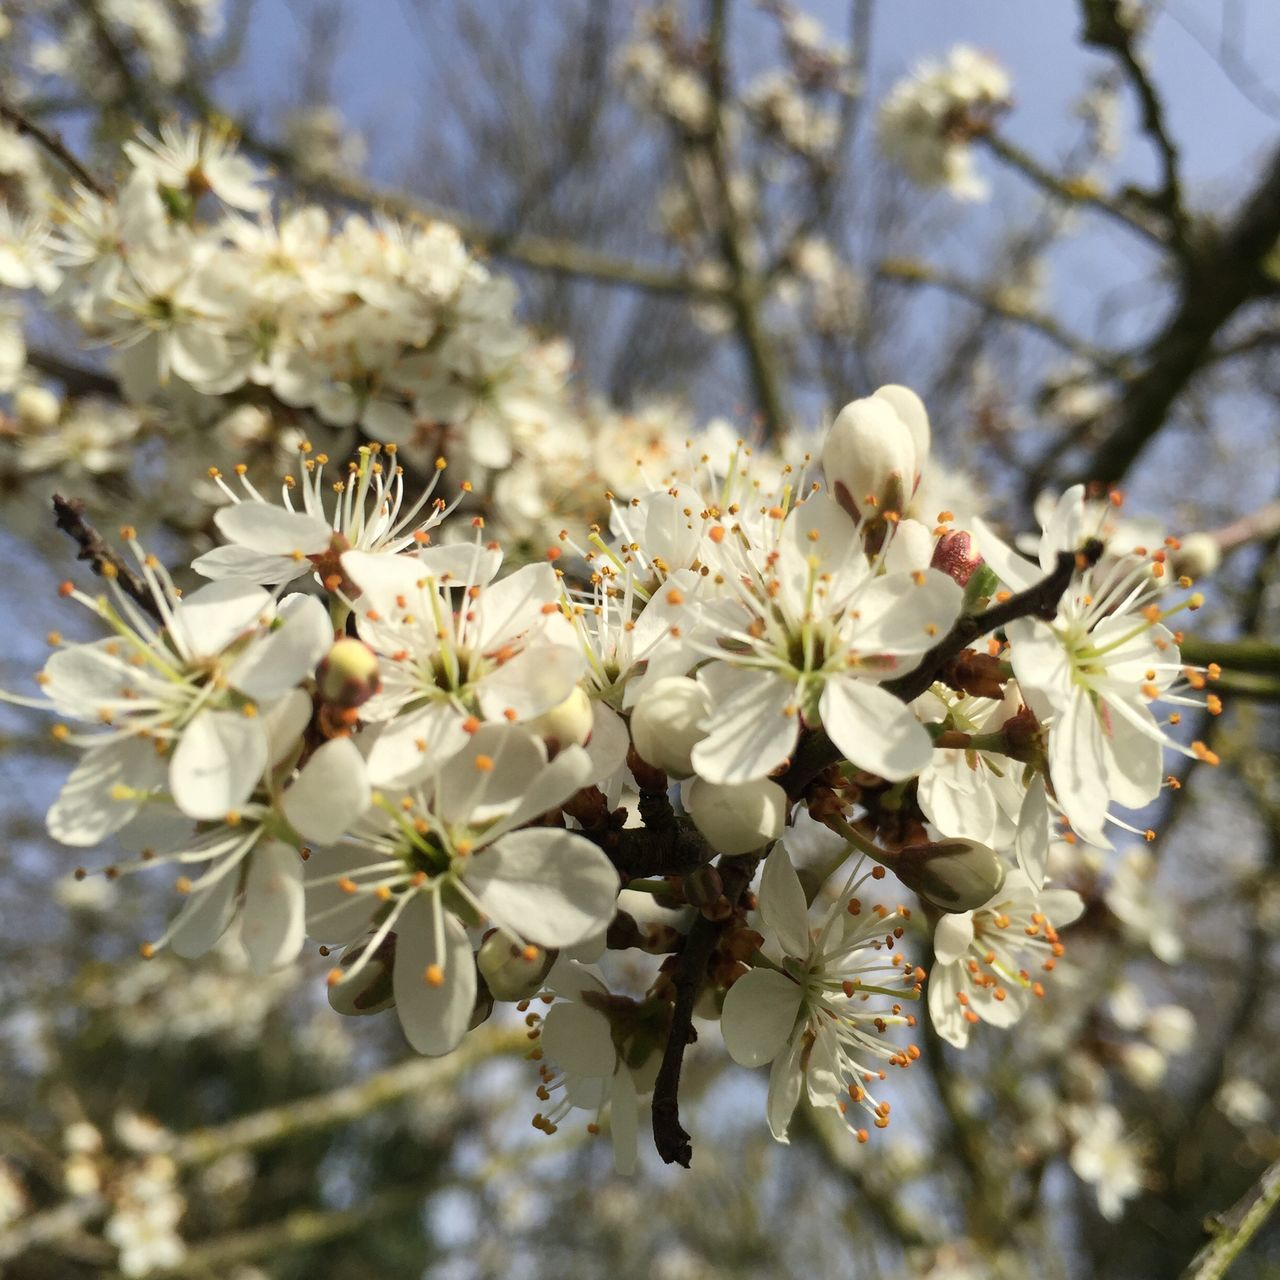 flower, tree, blossom, fragility, growth, apple blossom, branch, springtime, nature, apple tree, beauty in nature, white color, orchard, almond tree, botany, cherry tree, freshness, twig, no people, stamen, petal, day, low angle view, spring, outdoors, close-up, blooming, flower head